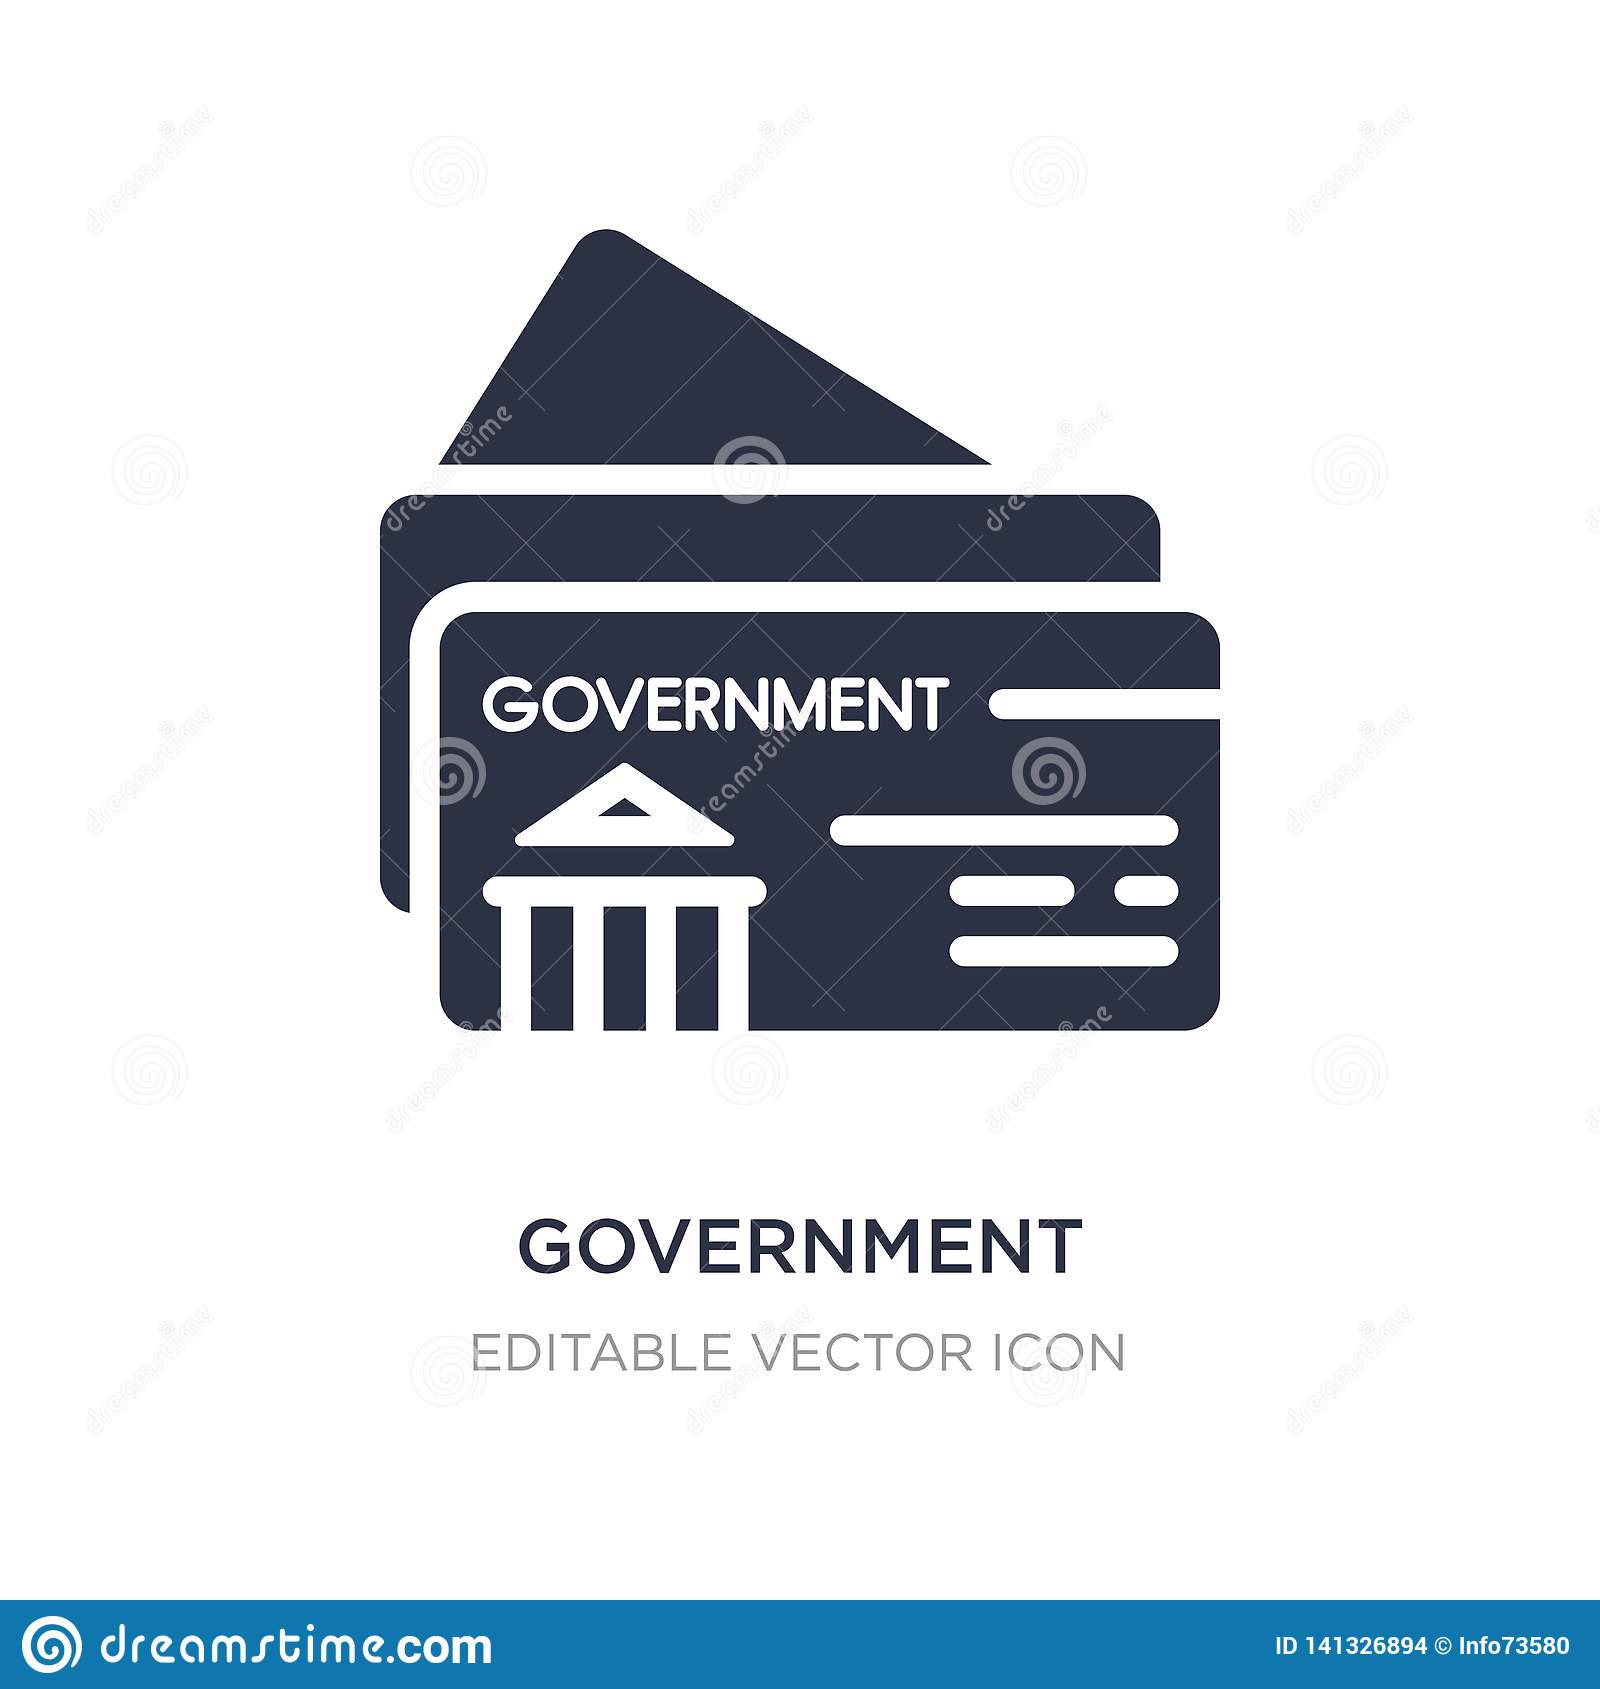 government business card icon on white background. Simple element illustration from Other concept